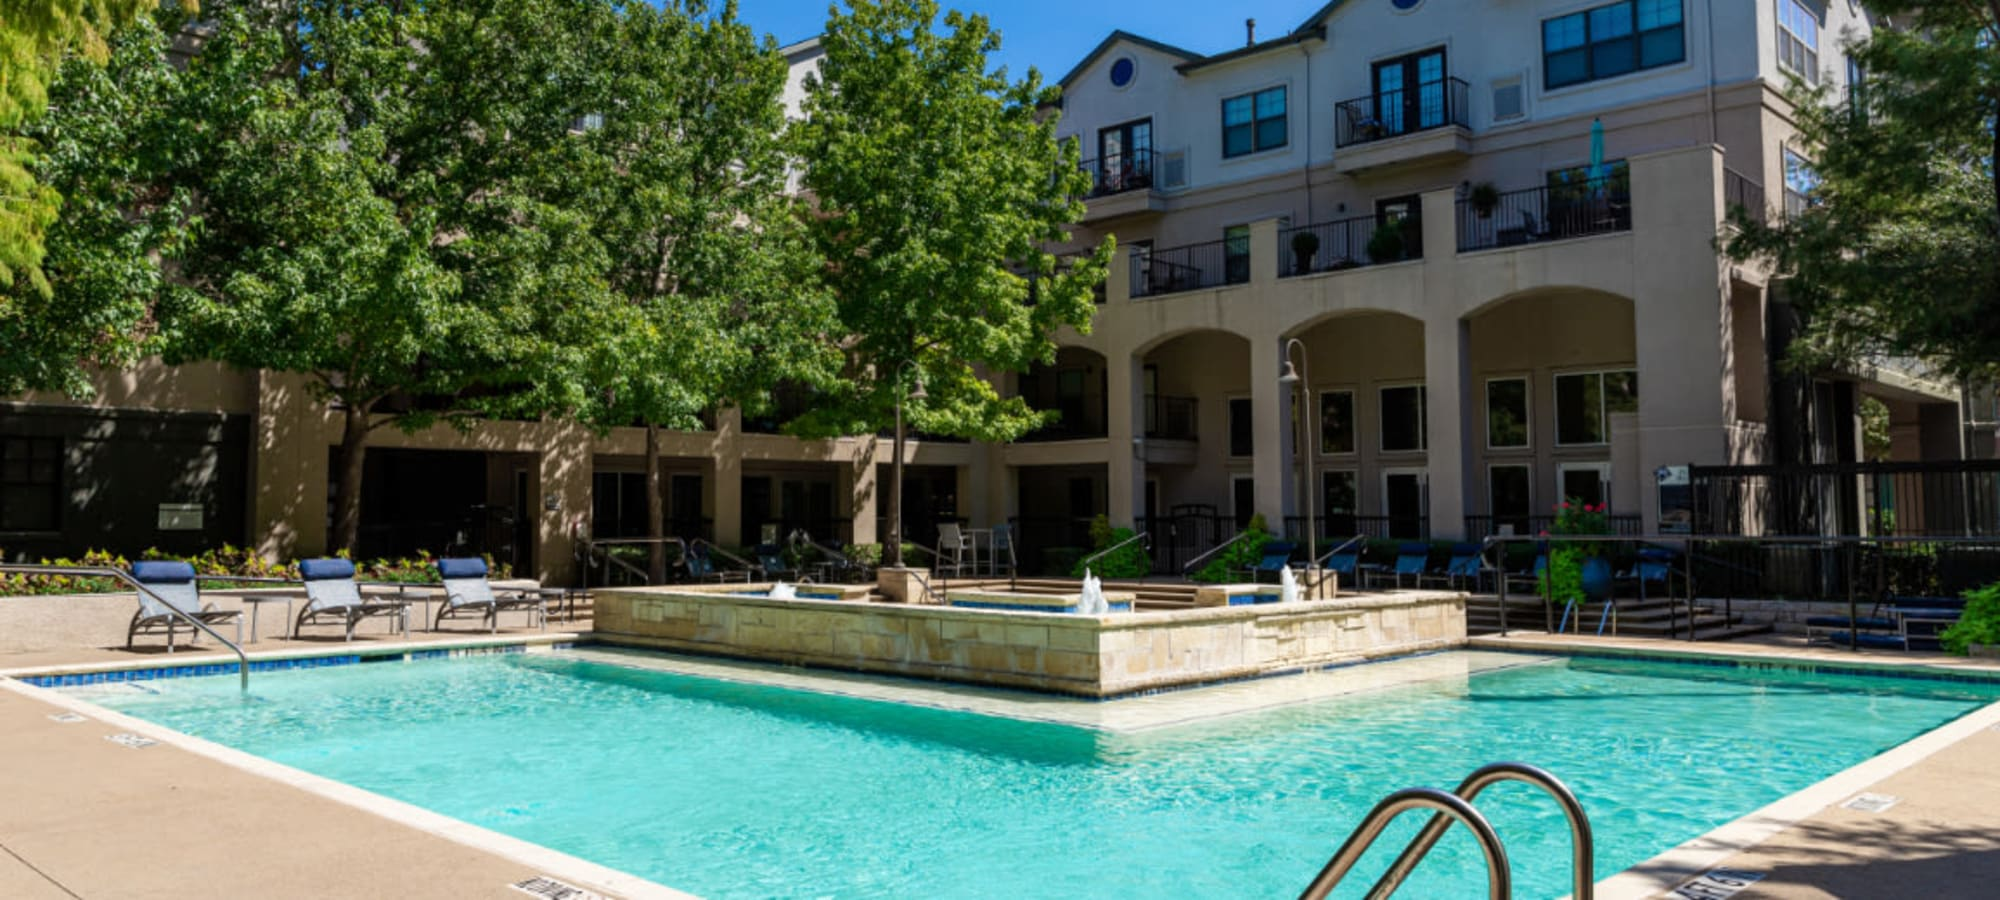 Amenities at Marquis at Texas Street in Dallas, Texas